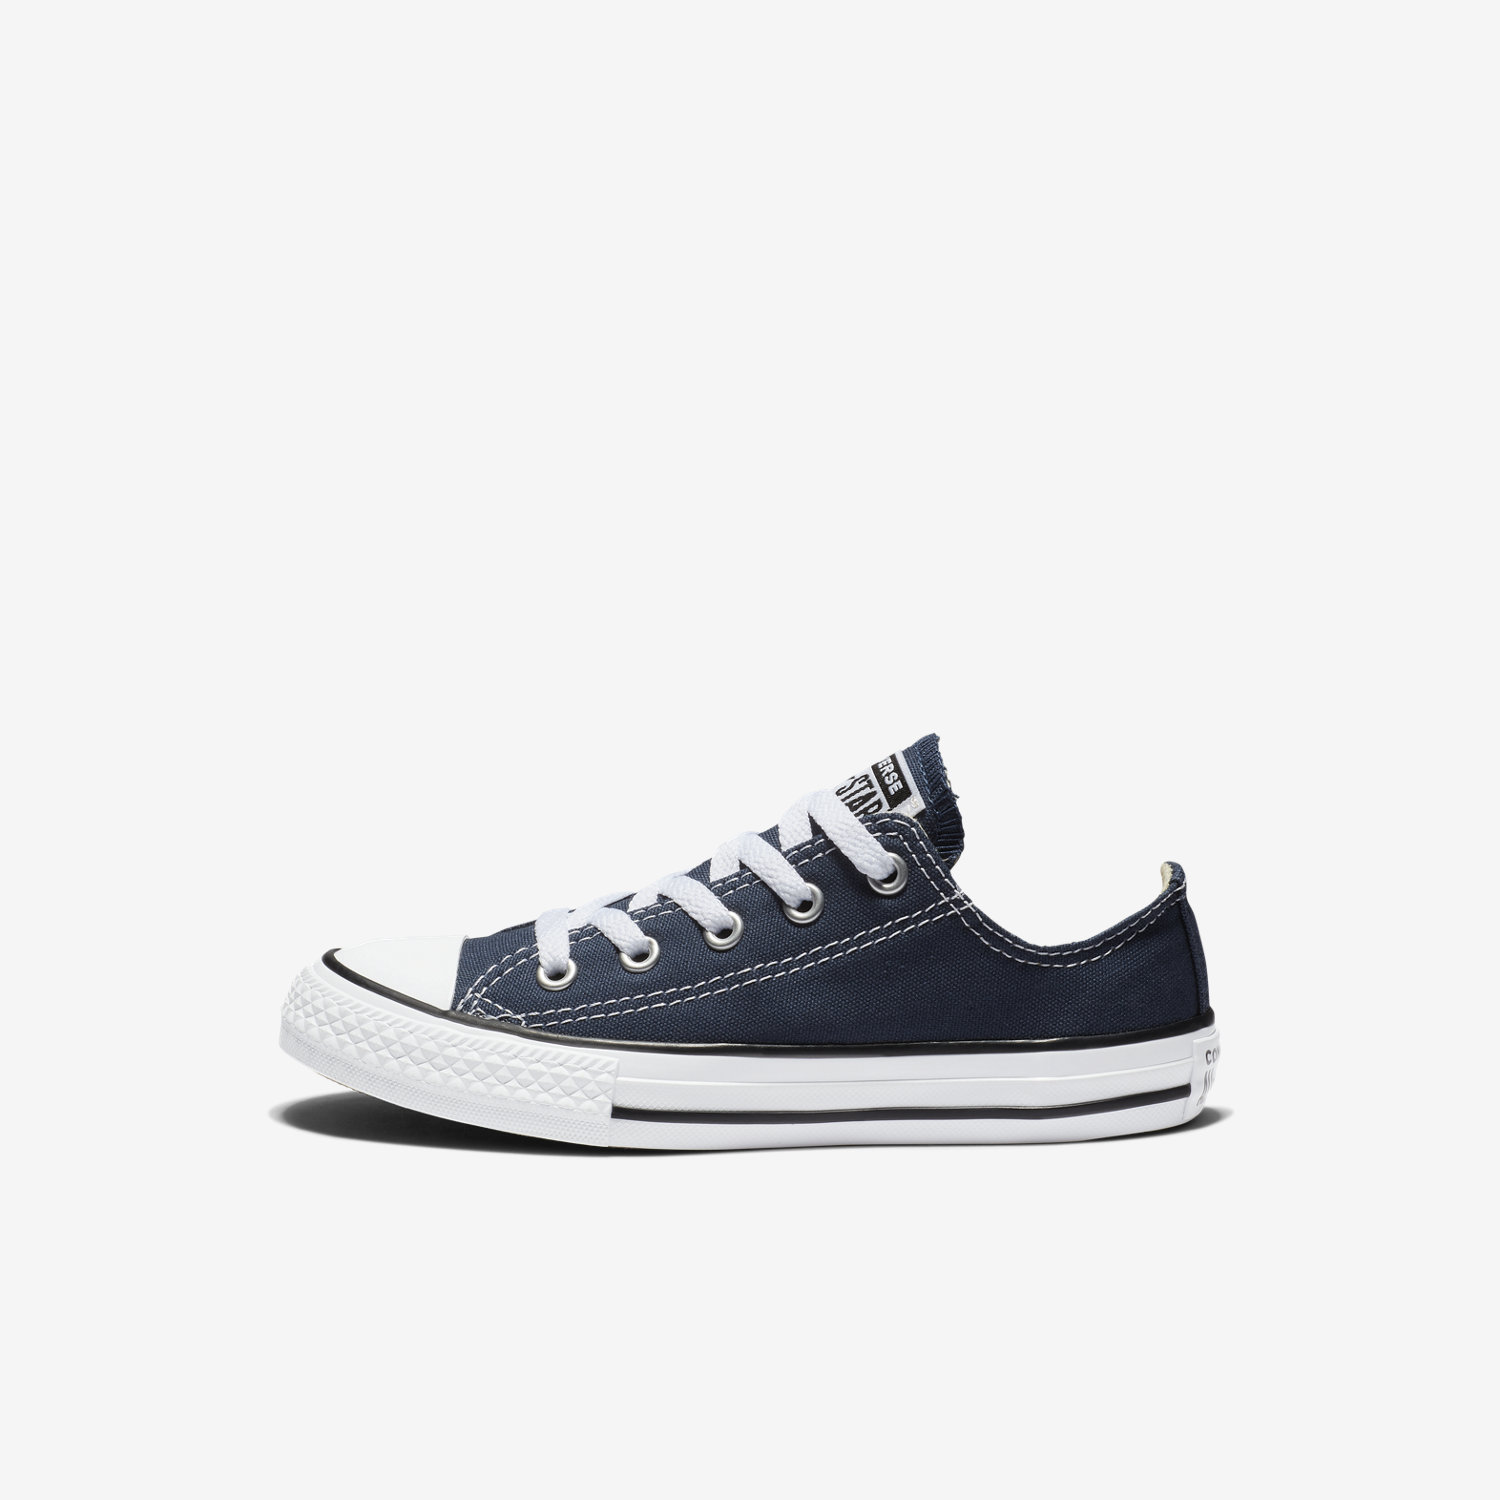 Converse Chuck Taylor All Star Low Top (10.5c-3y) Little Kids' Shoe. Nike .com